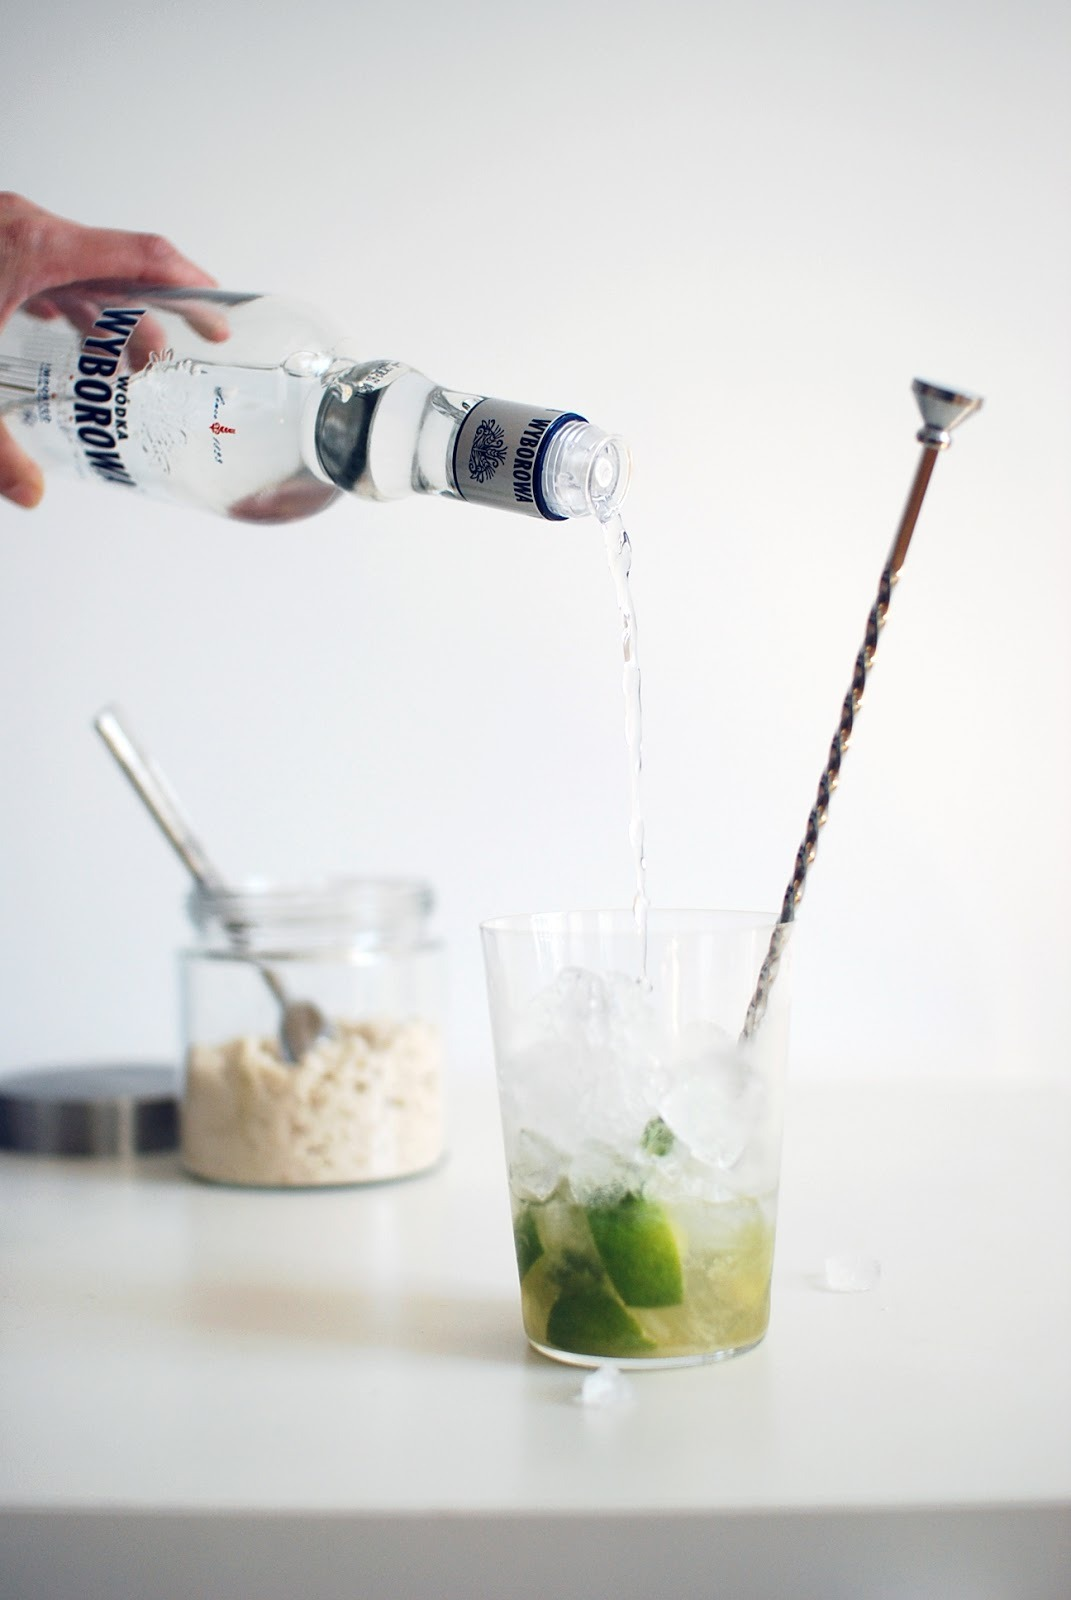 (via In the mood for food: Happy Hour)